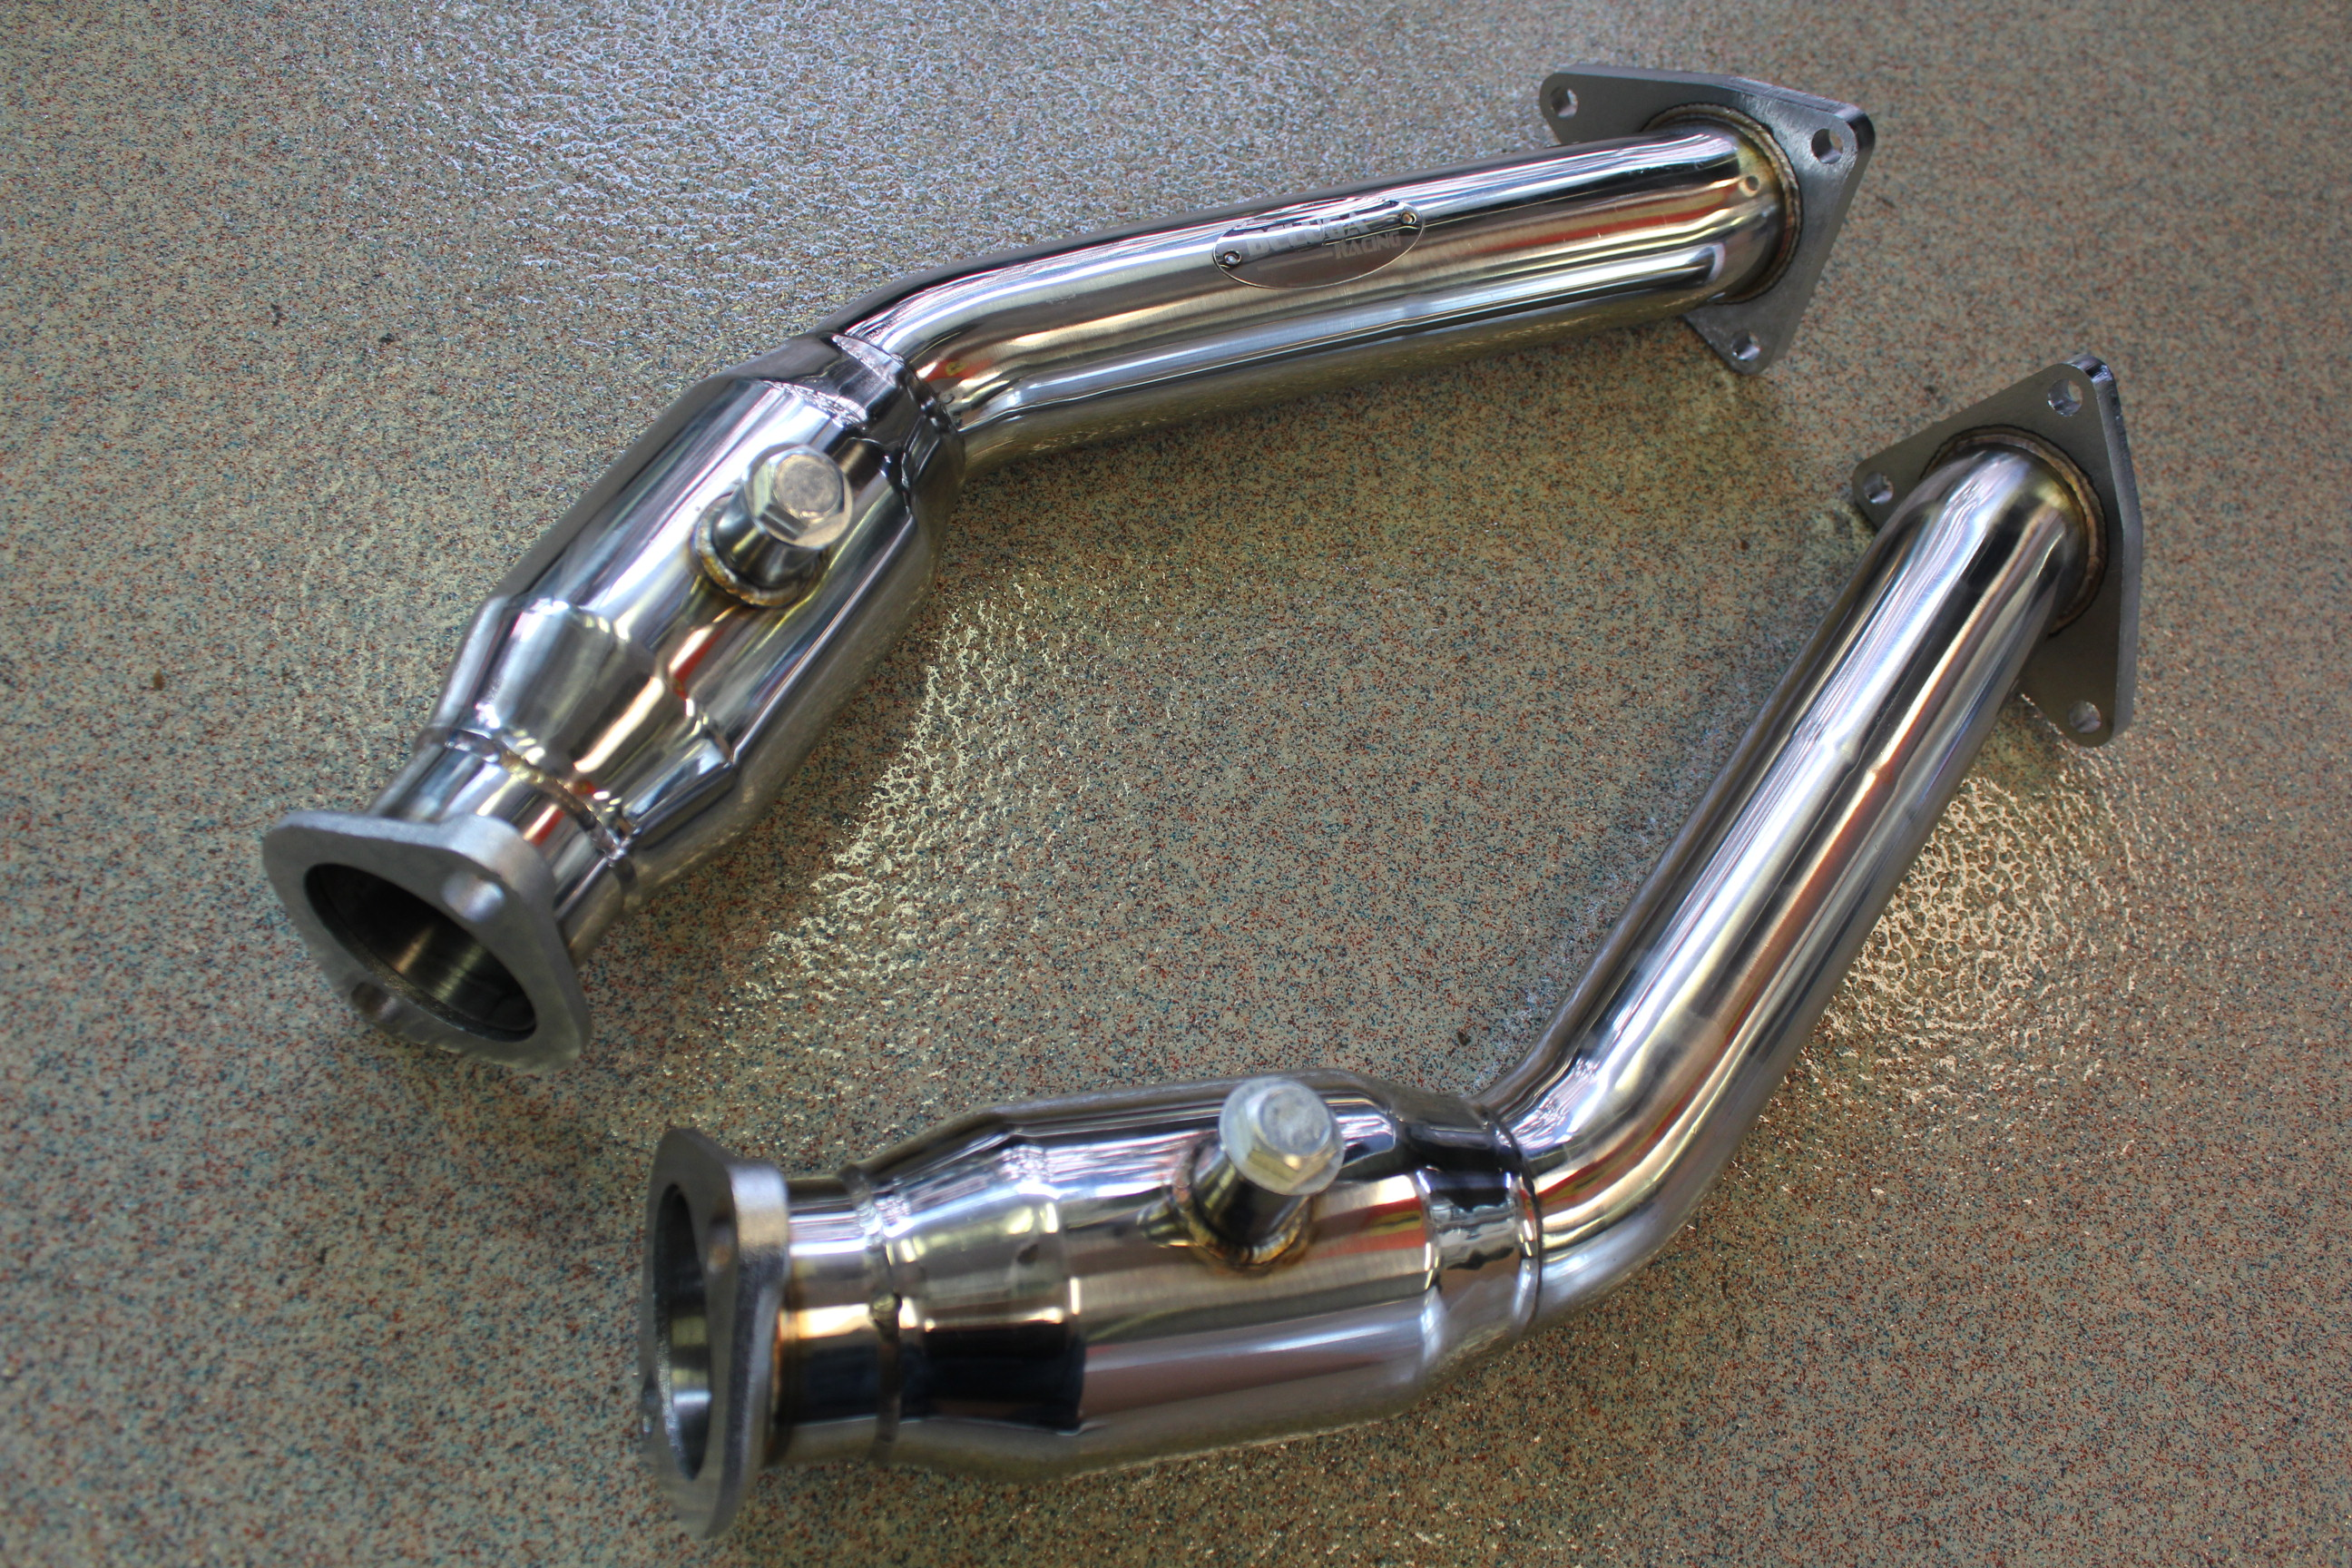 Beluga Racing Performance Exhaust Resonated Test Pipes for 350Z 07-08 VQ35HR